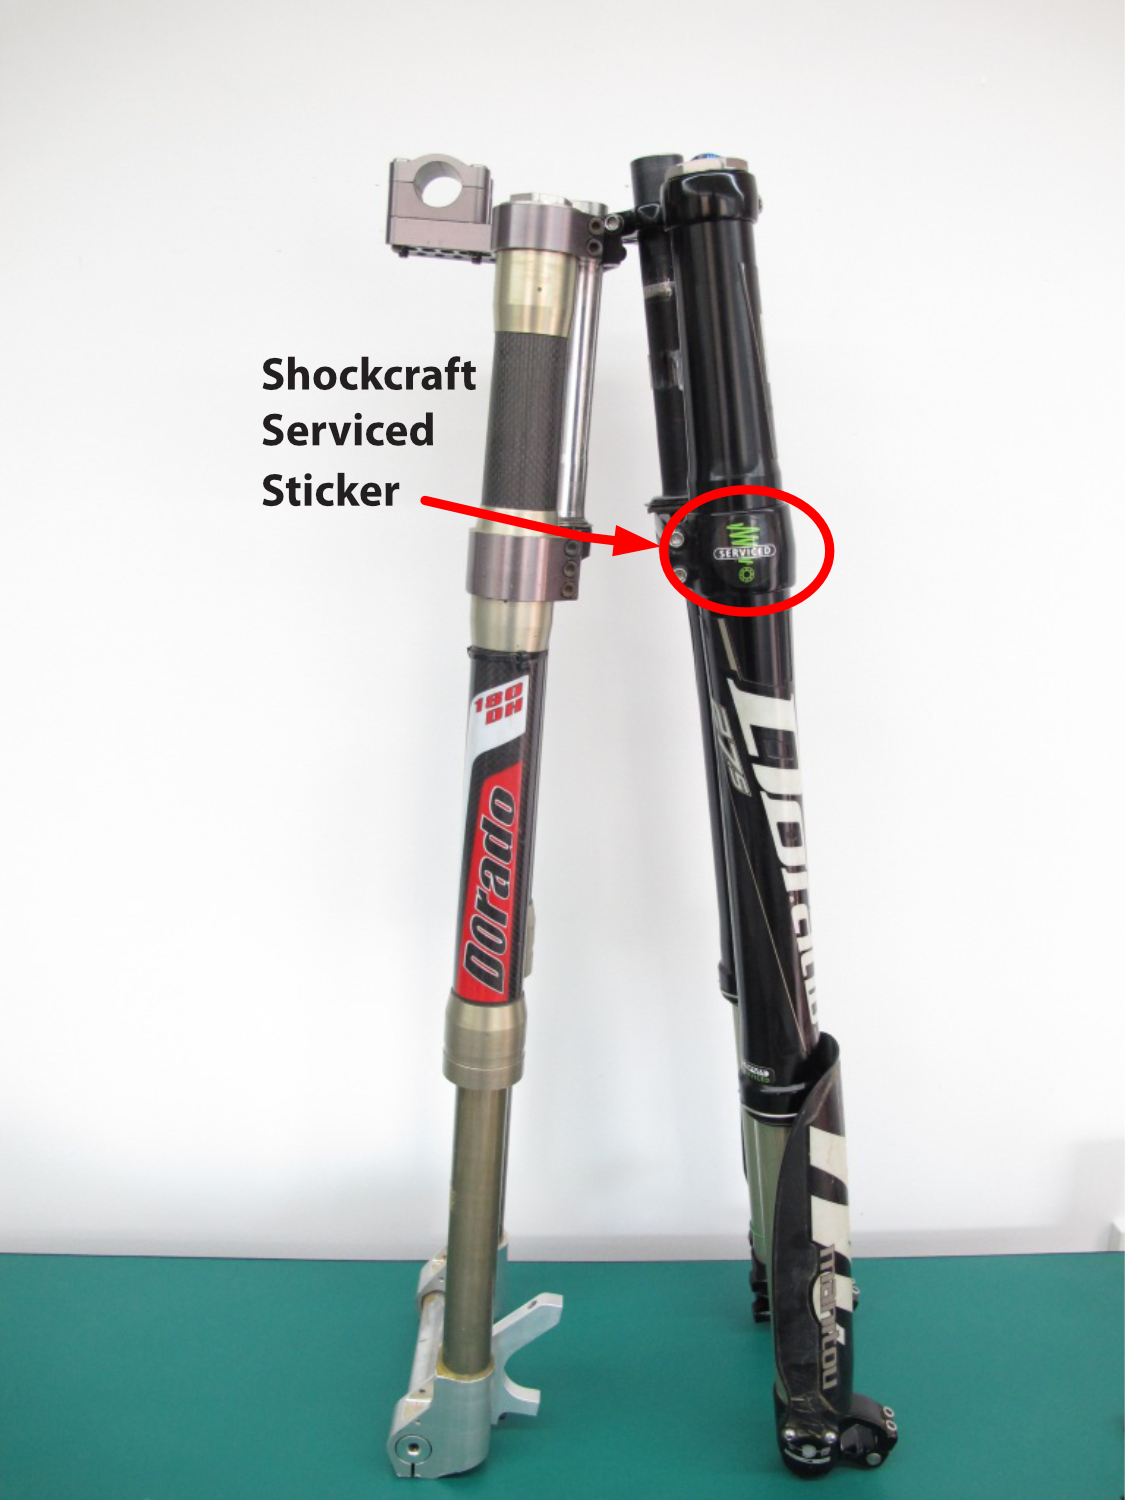 Shockcraft Serviced Forks